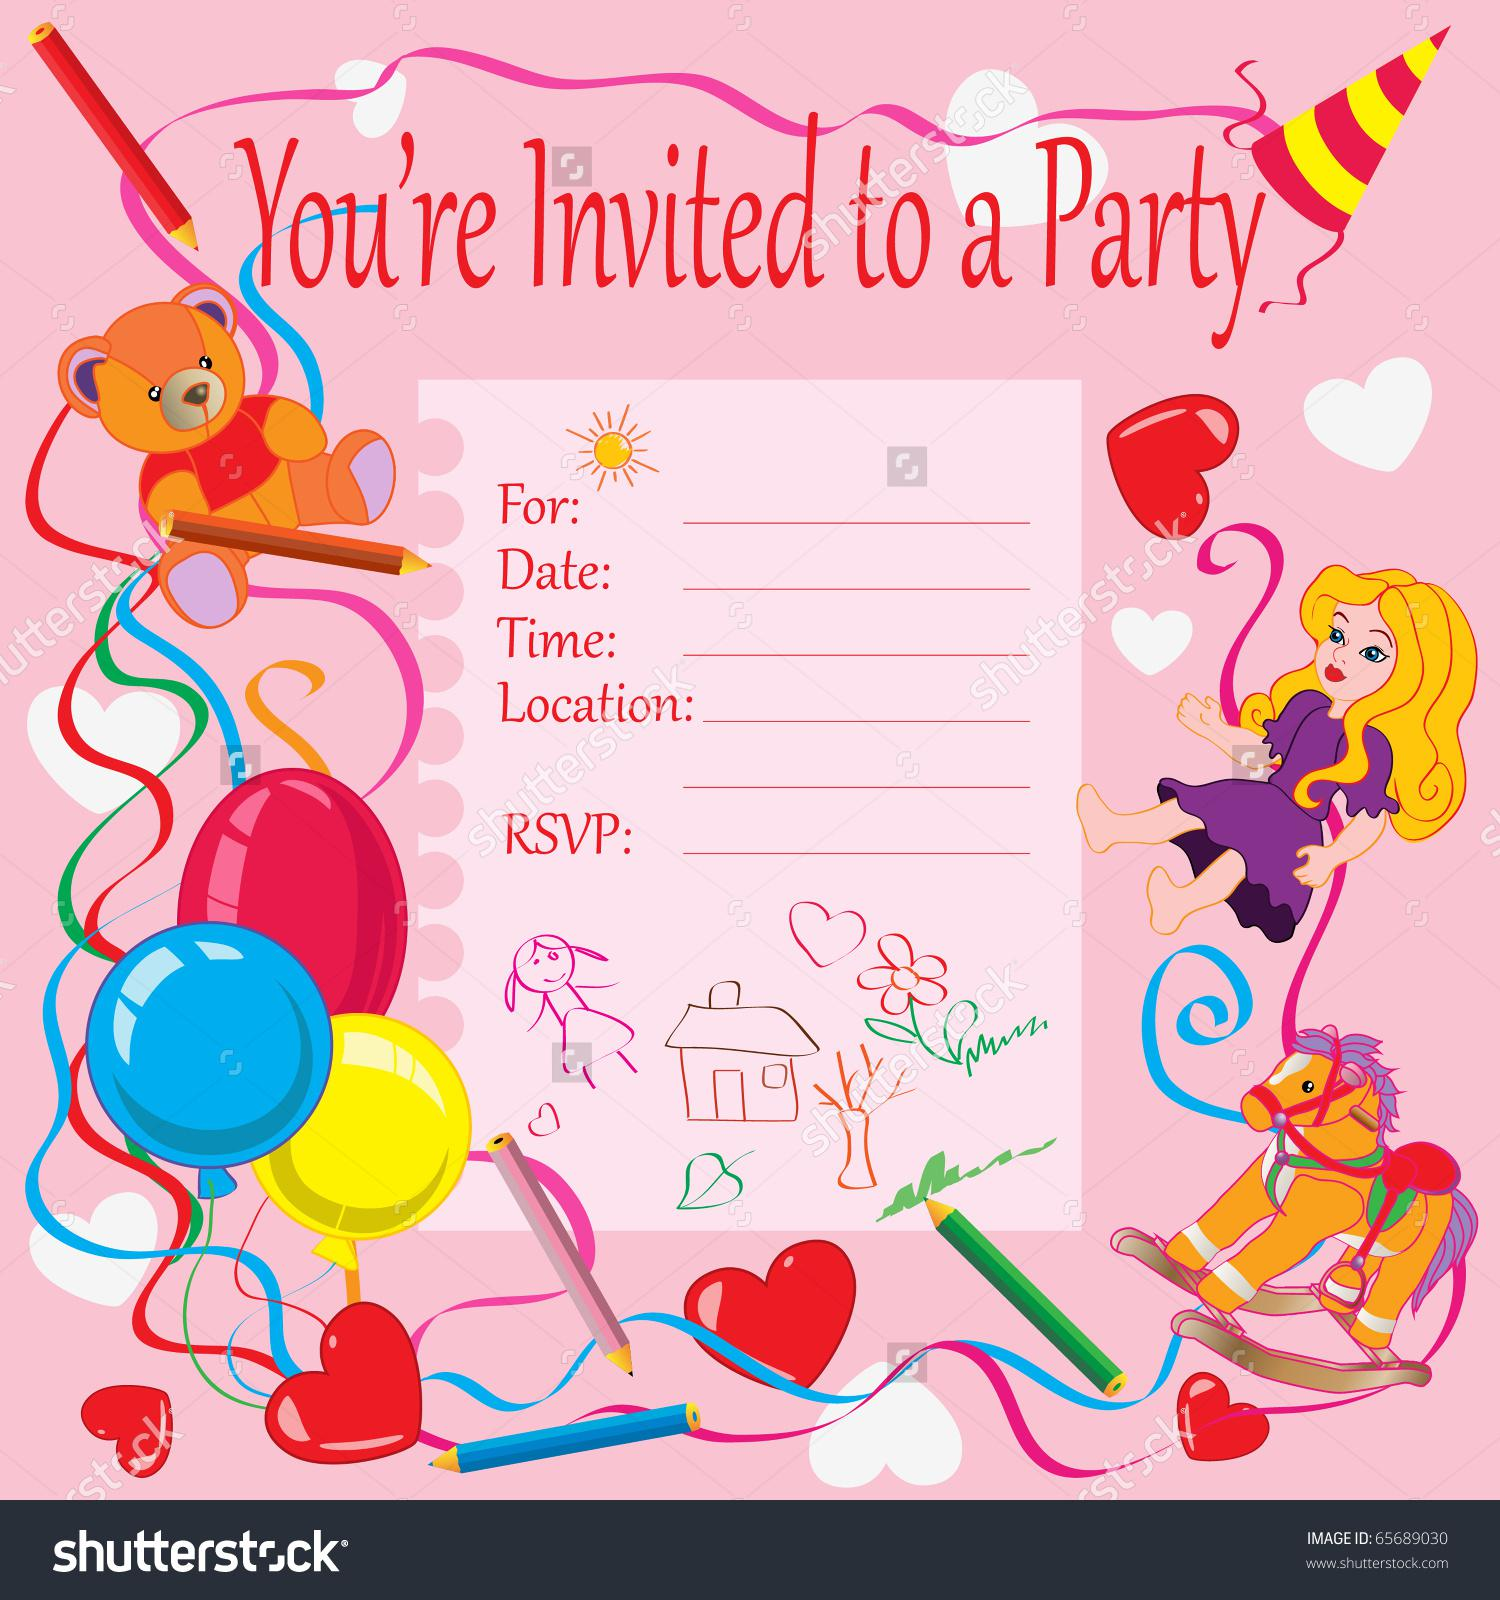 Kids birthday invitation cards ukrandiffusion kids birthday invitation cards 4 step make your own birthday invitations free sample printable filmwisefo